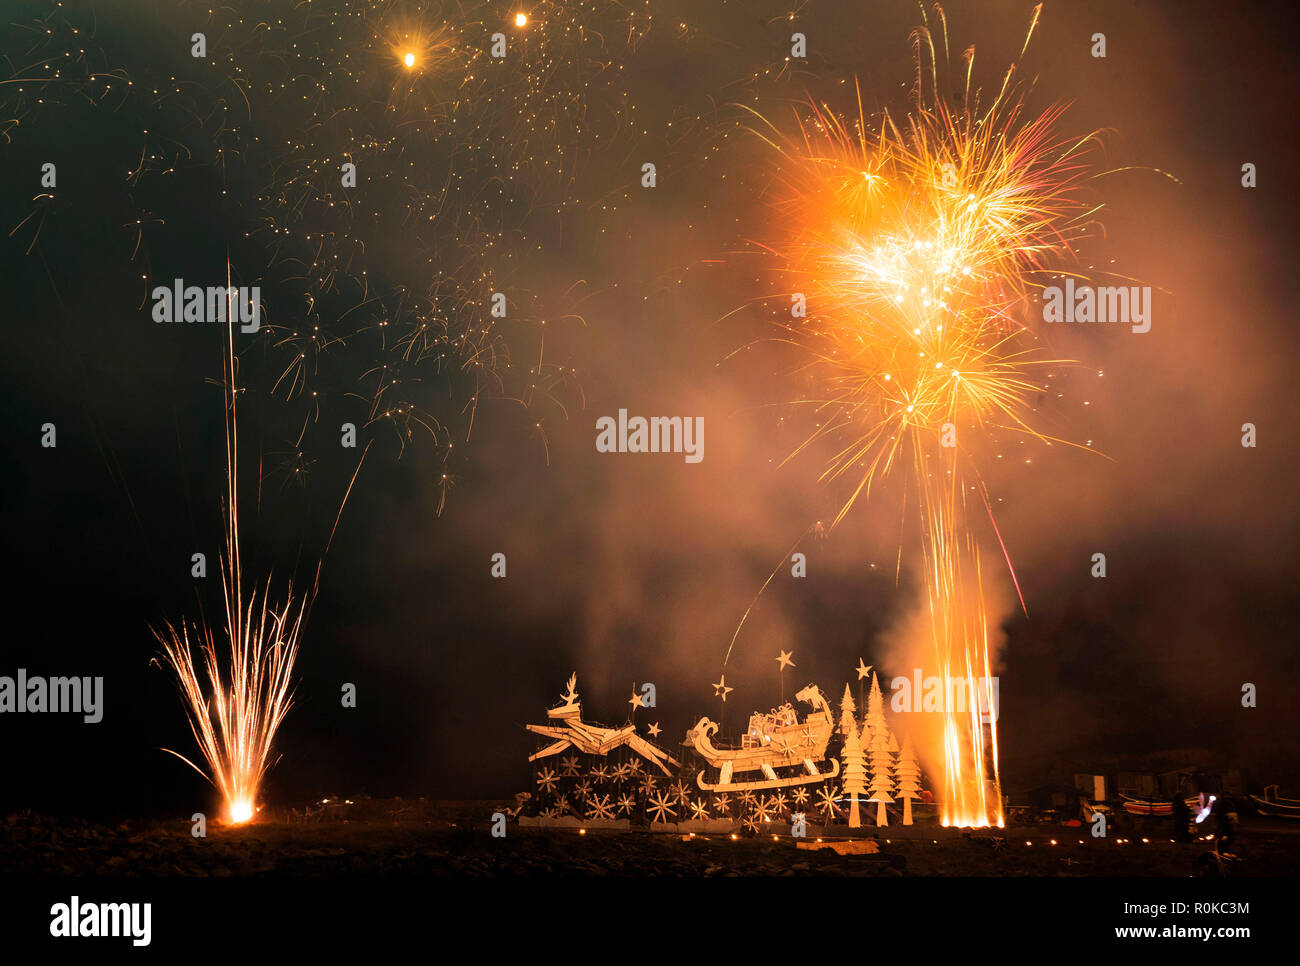 Fireworks next to a unlit bonfire in the shape of a Christmas sleigh filled with presents during the Skinningrove bonfire celebrations in North Yorkshire. - Stock Image